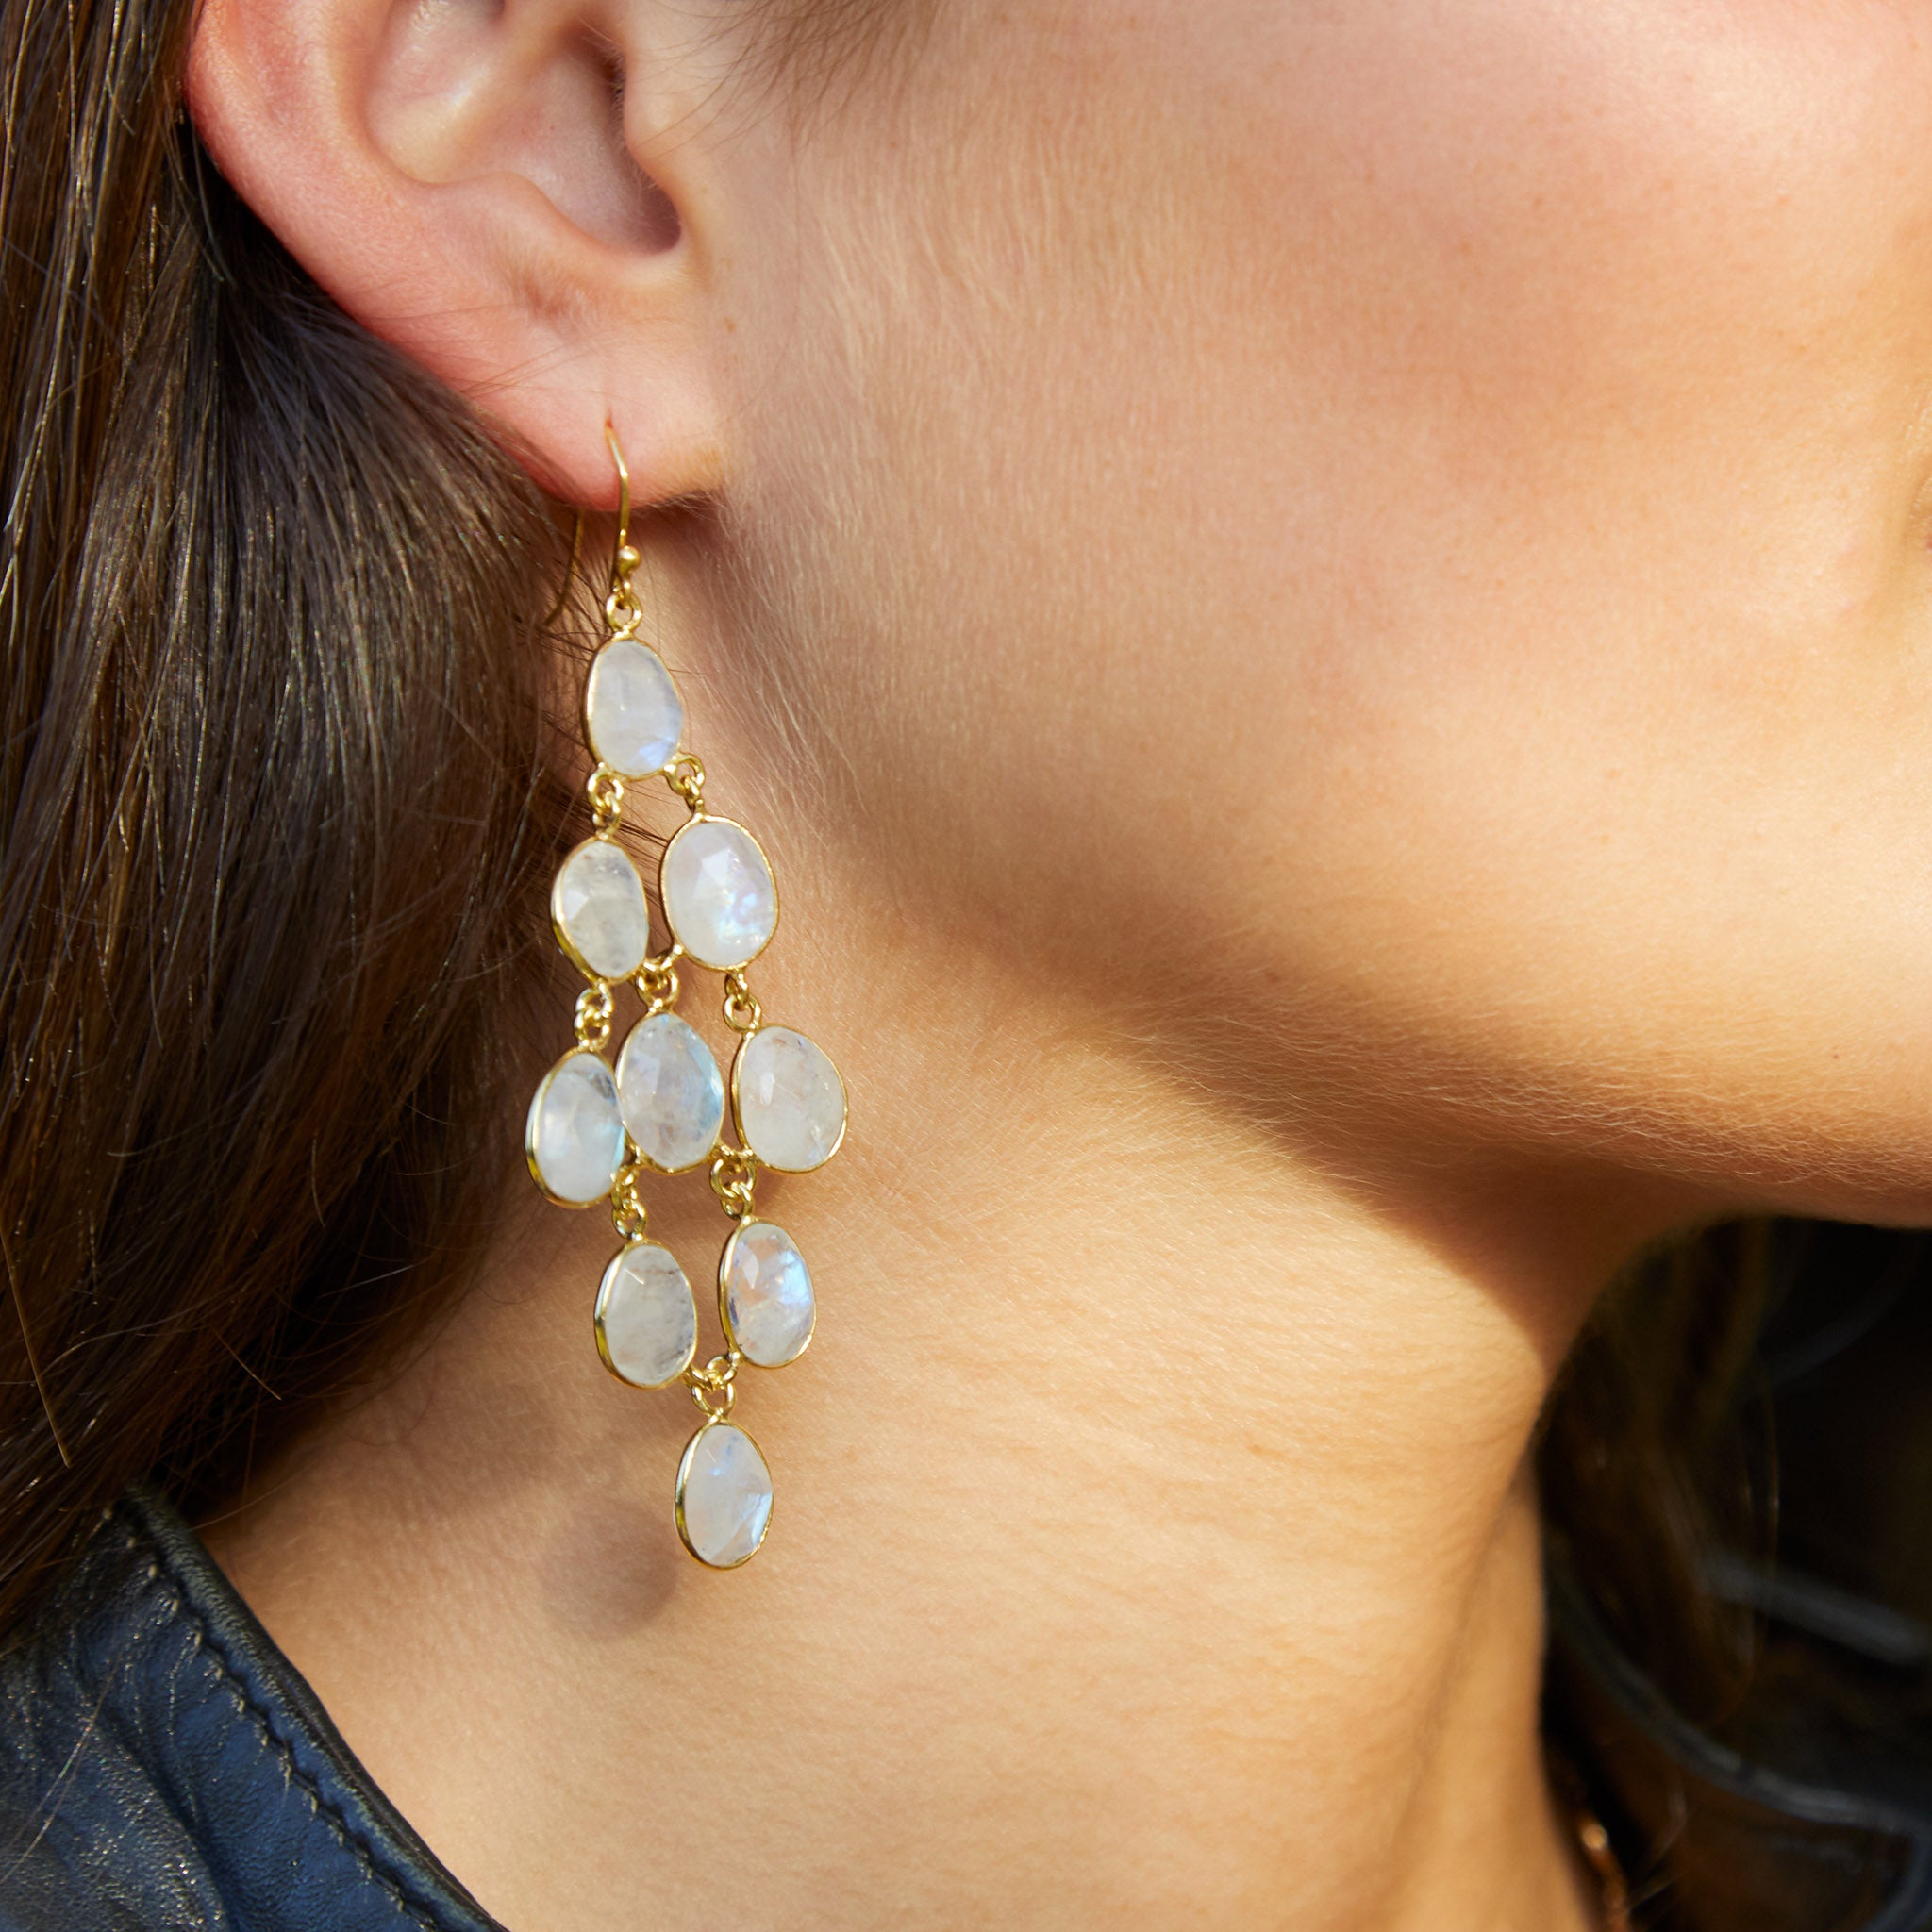 Waterfall Earring in Gold with Moonstone